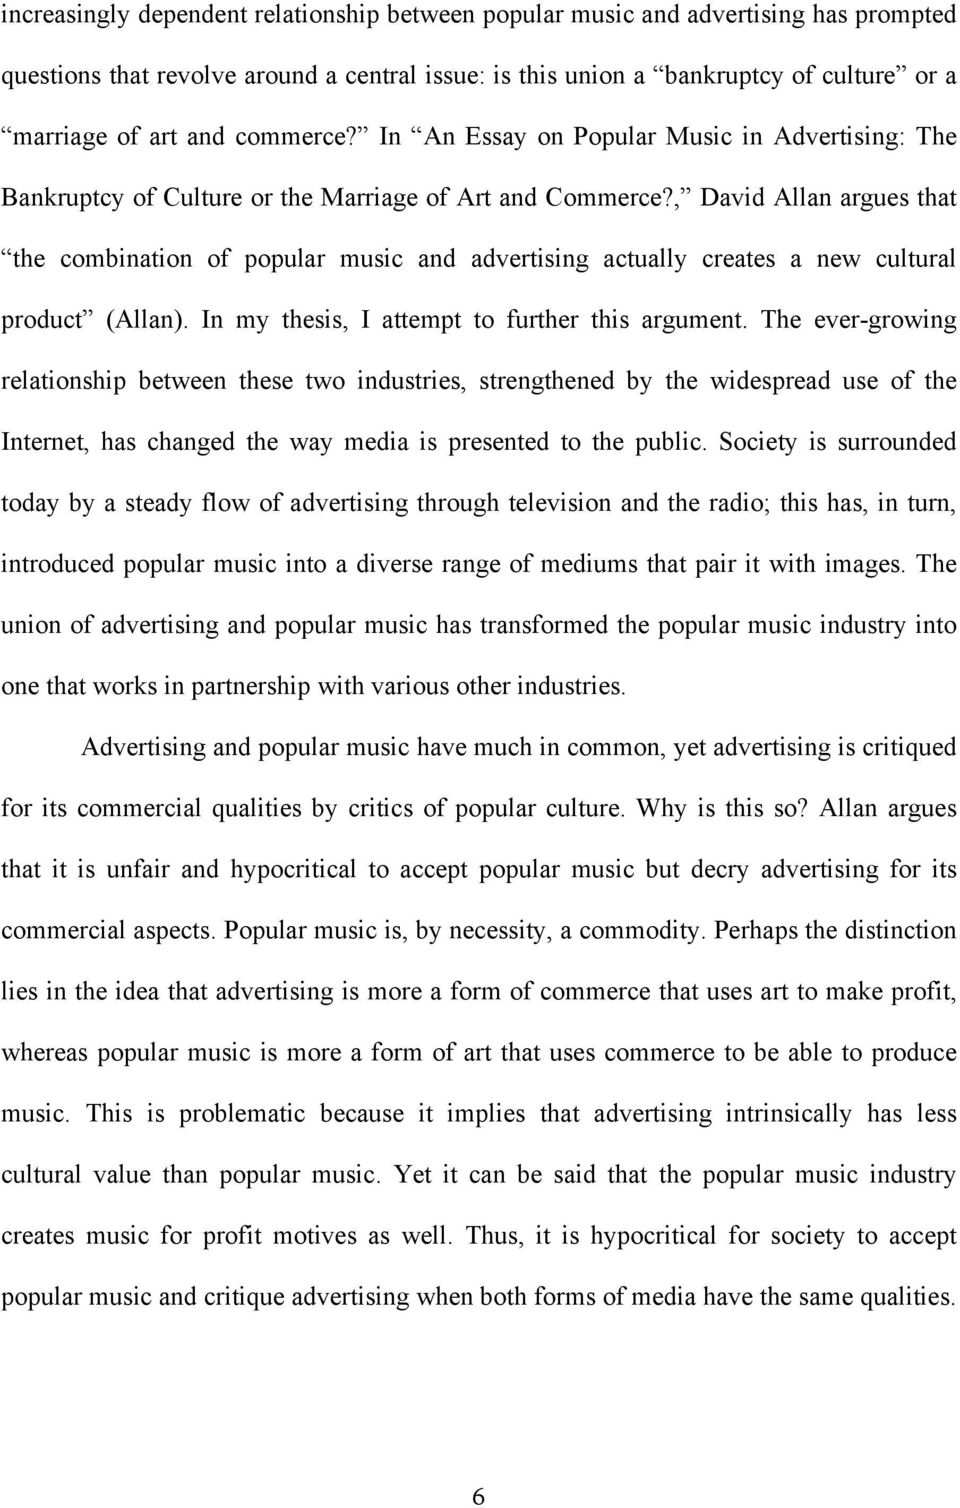 , David Allan argues that the combination of popular music and advertising actually creates a new cultural product (Allan). In my thesis, I attempt to further this argument.